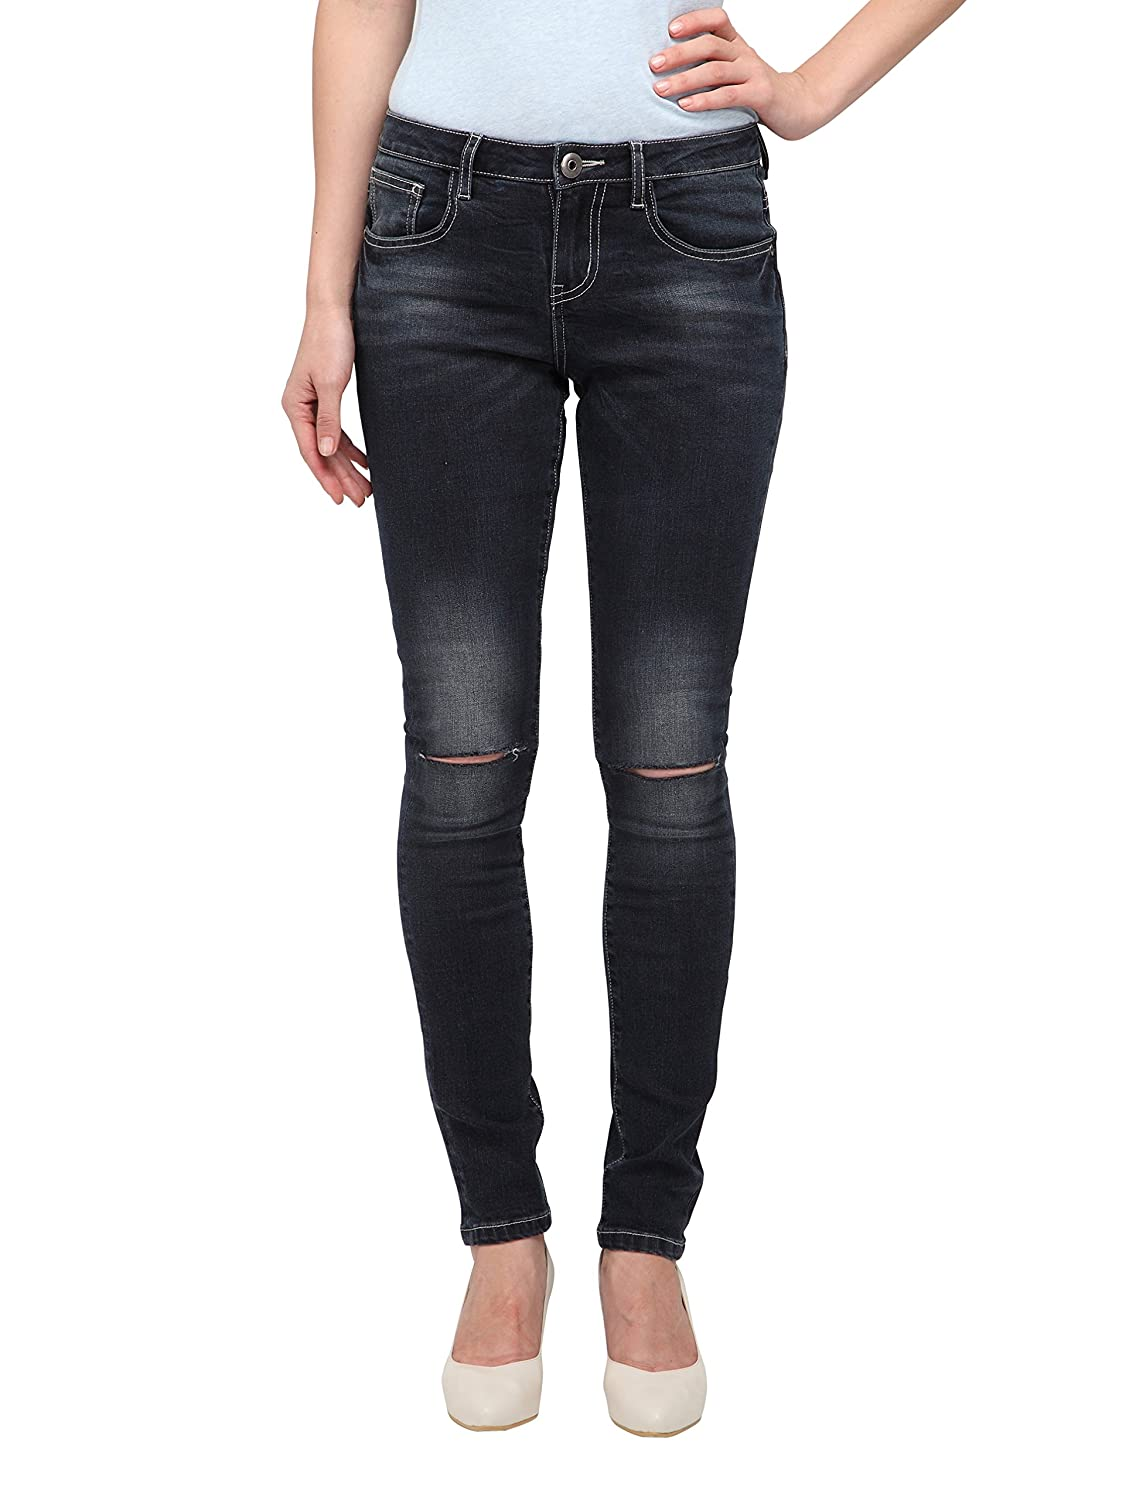 43699931aa8 The dark blue distressed skinny jean crafted with high quality skin soft